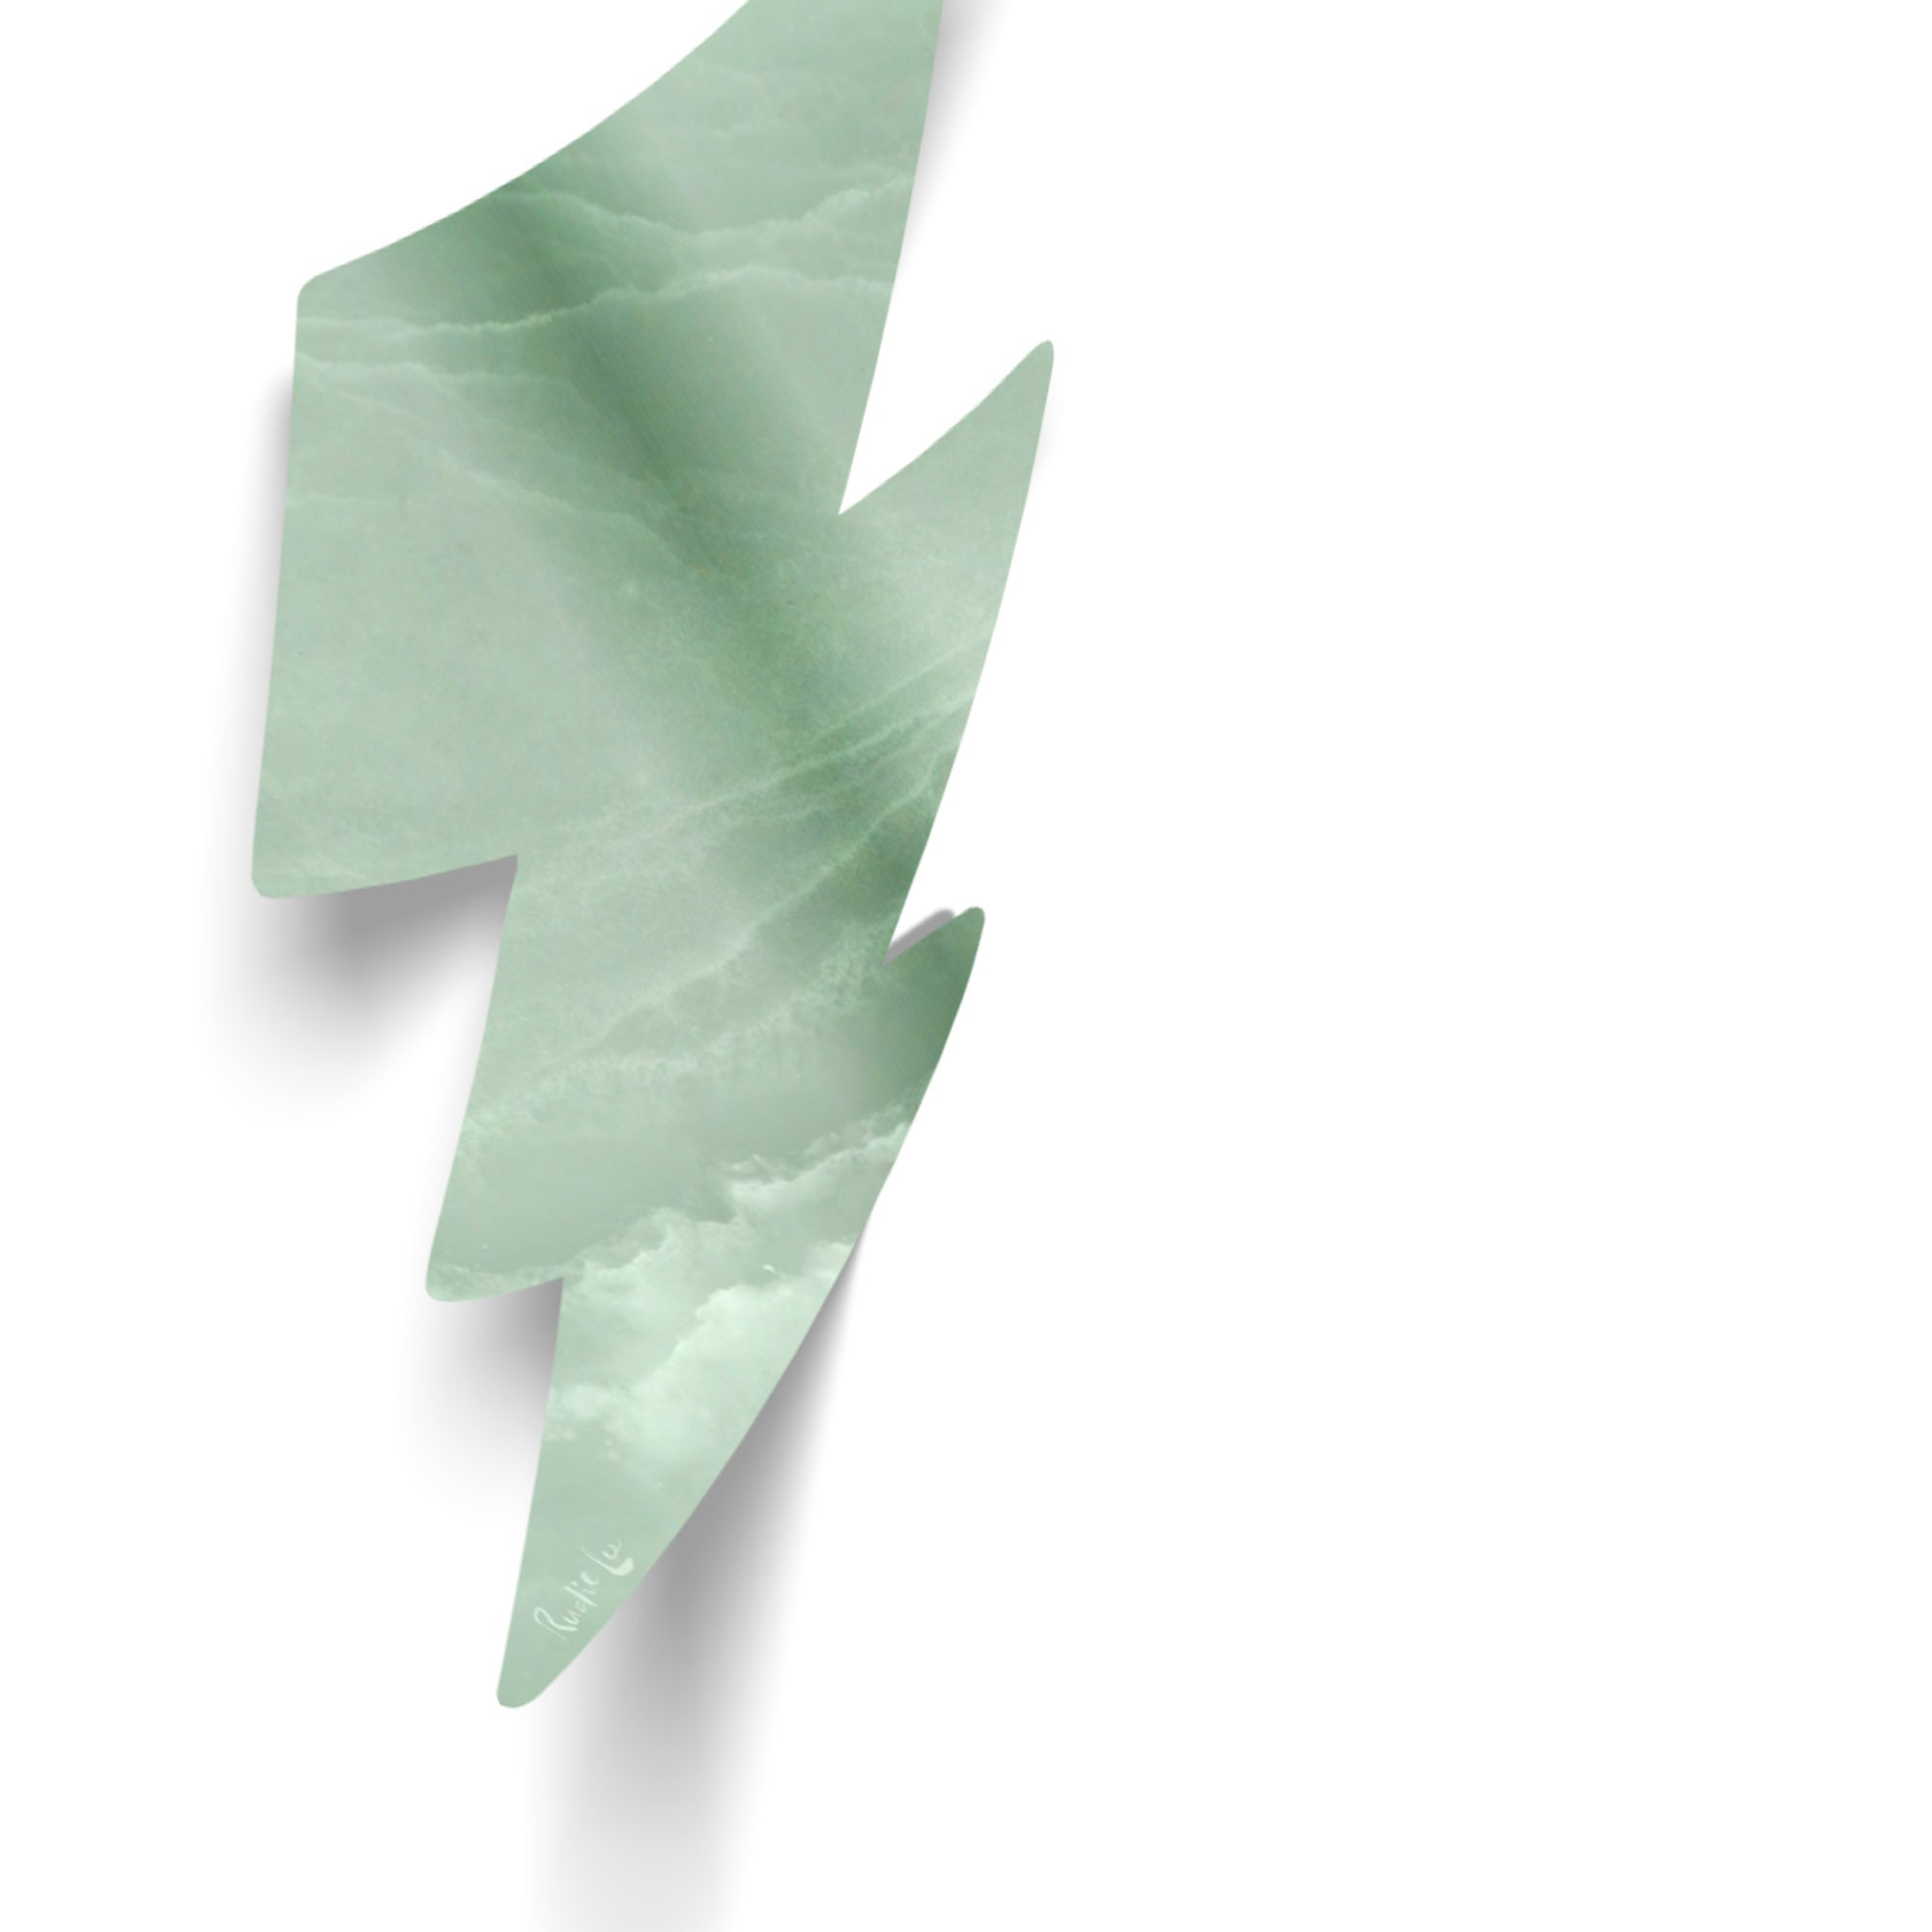 Lightning Bolt No. 02 (Luxe Green) by Rudie Lee